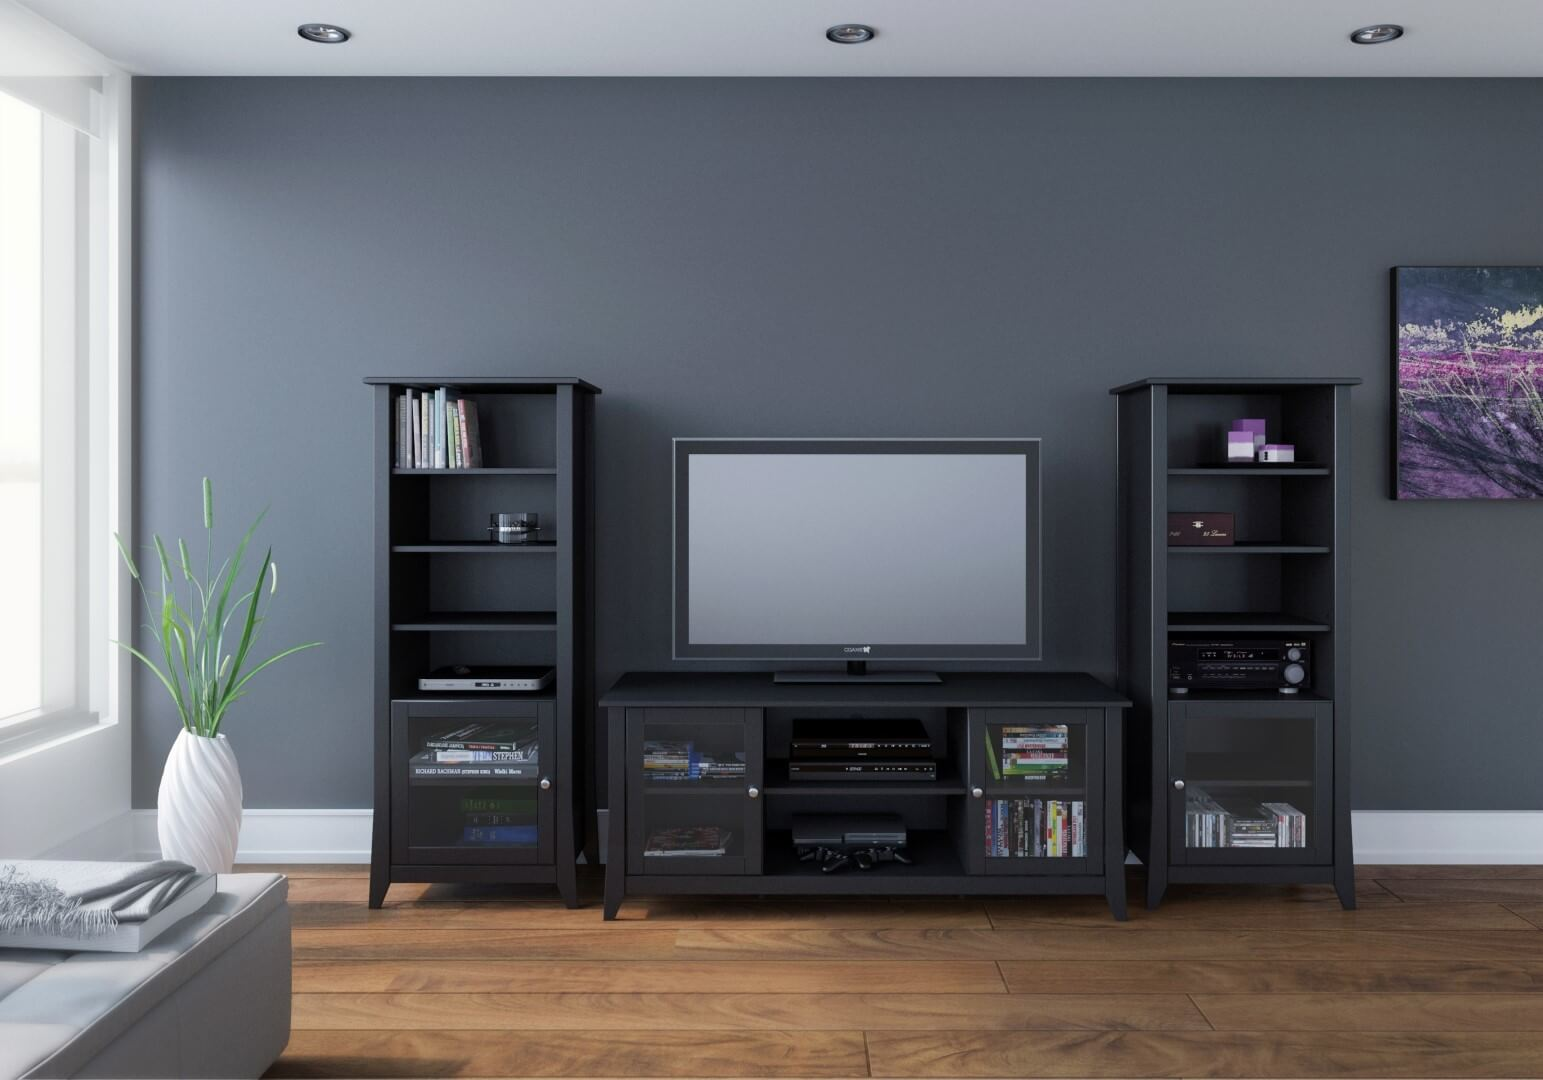 The TV stand with audio towers is a modular form that mimics most of the functionality and presentation of a full entertainment center, with a pair of tall structured shelves flanking the central stand and television itself. These allow for the placement of speakers and any other supplemental equipment.